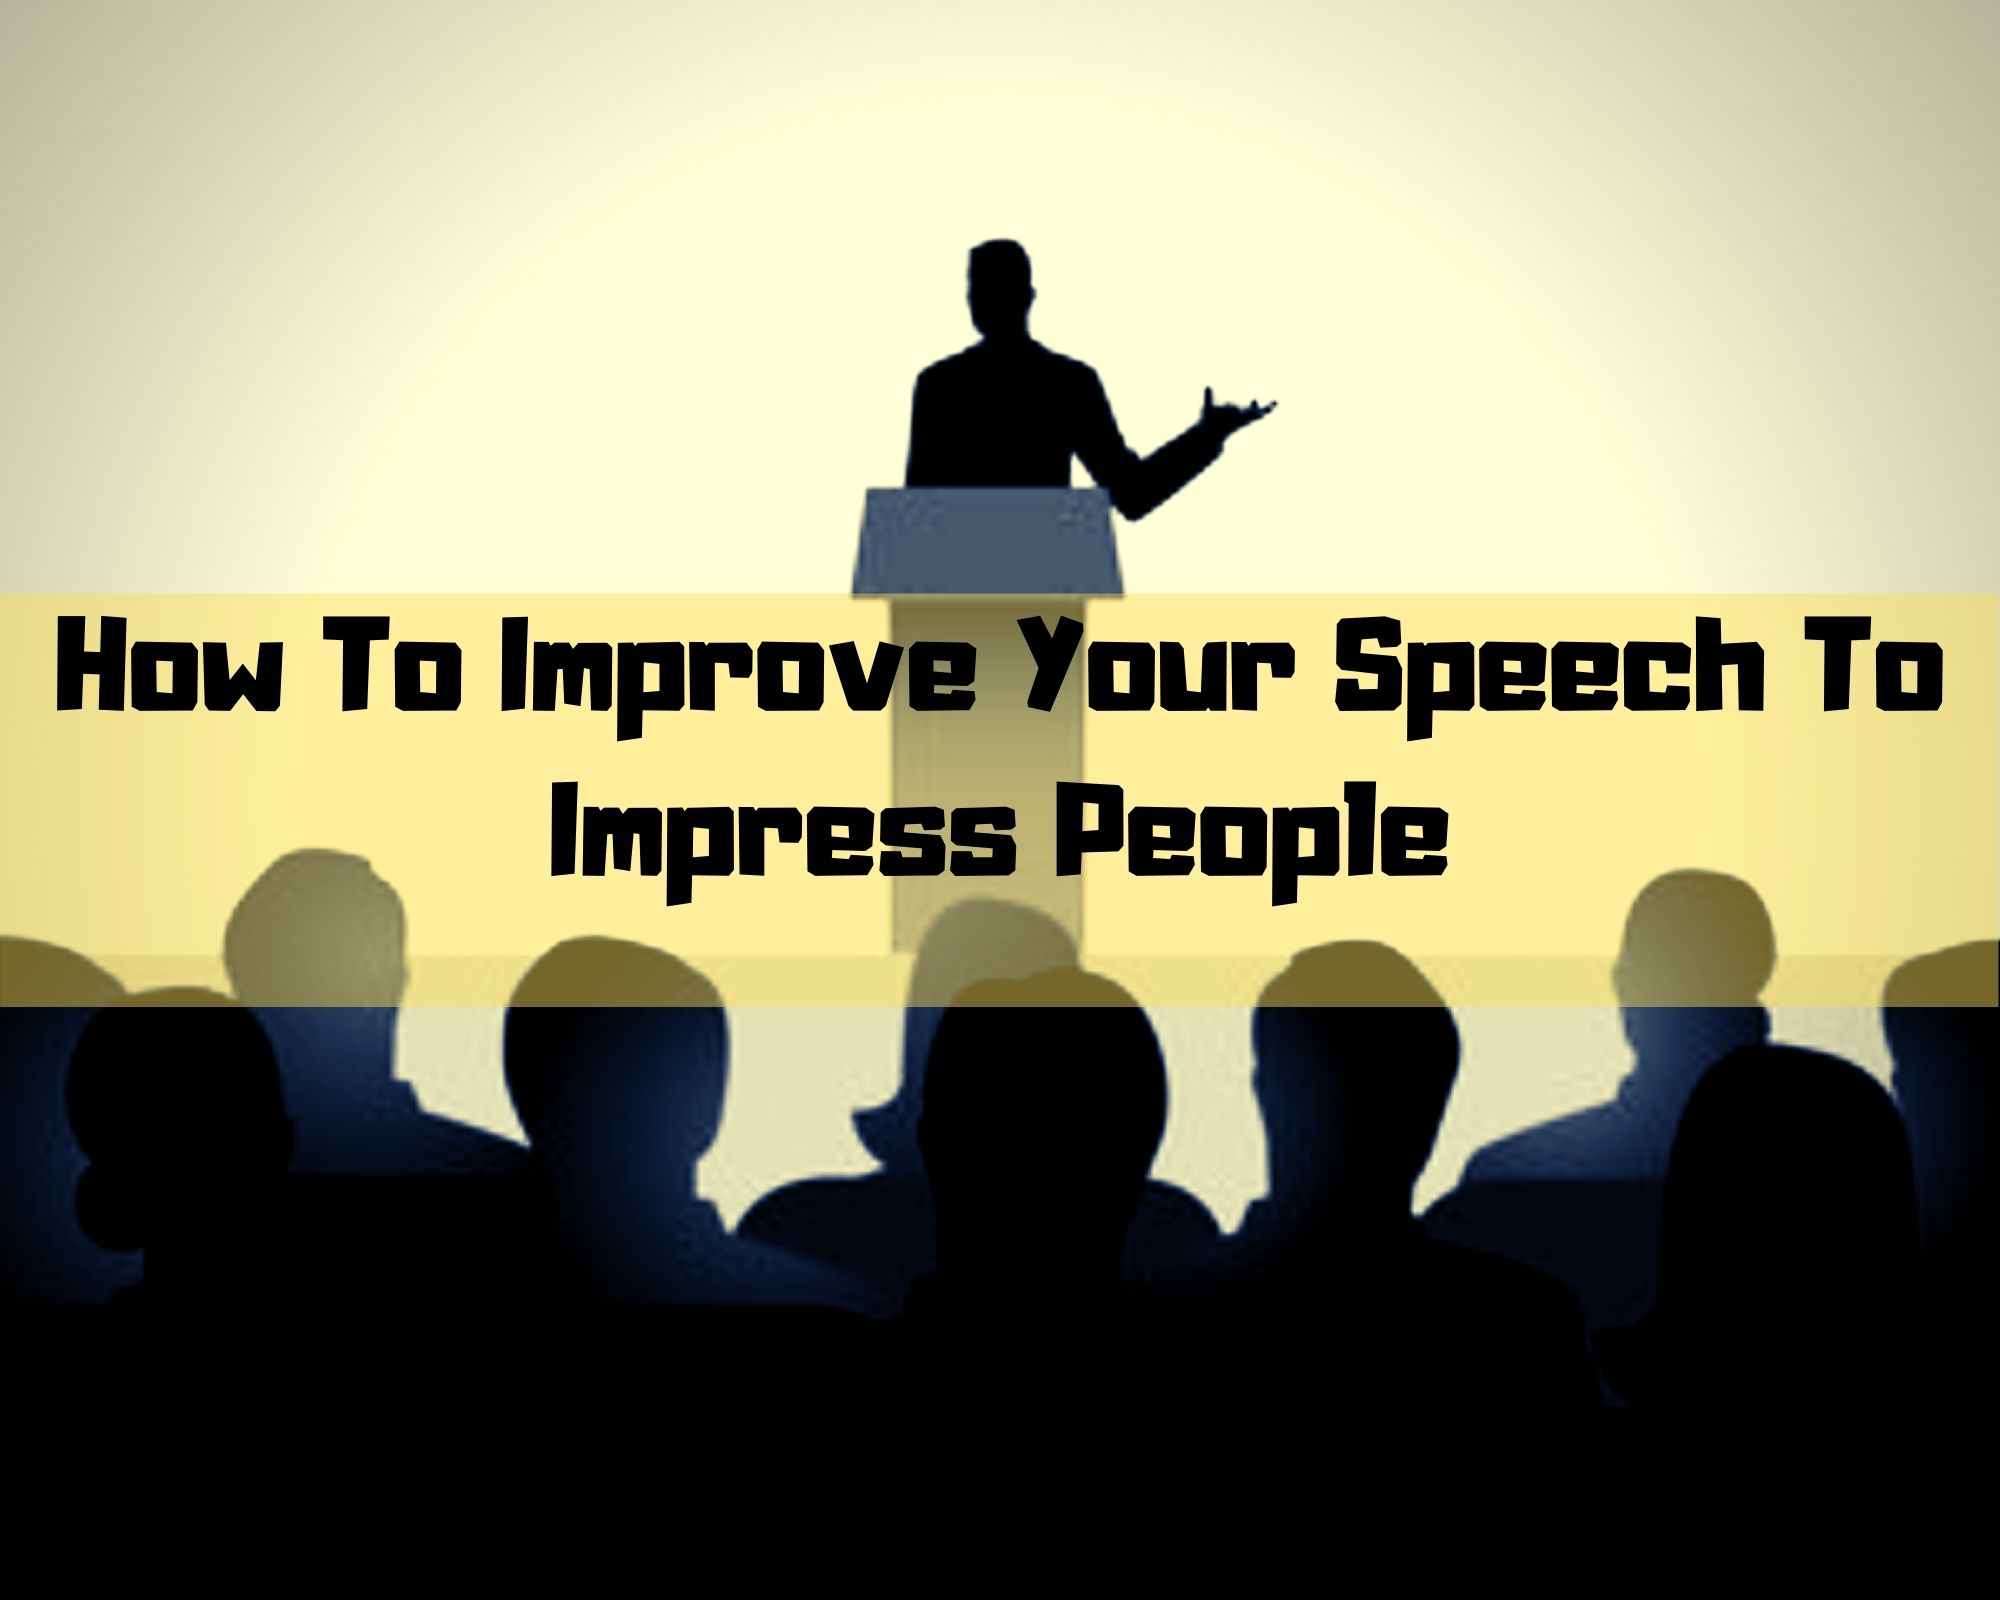 How To Improve Your Speech To Impress People